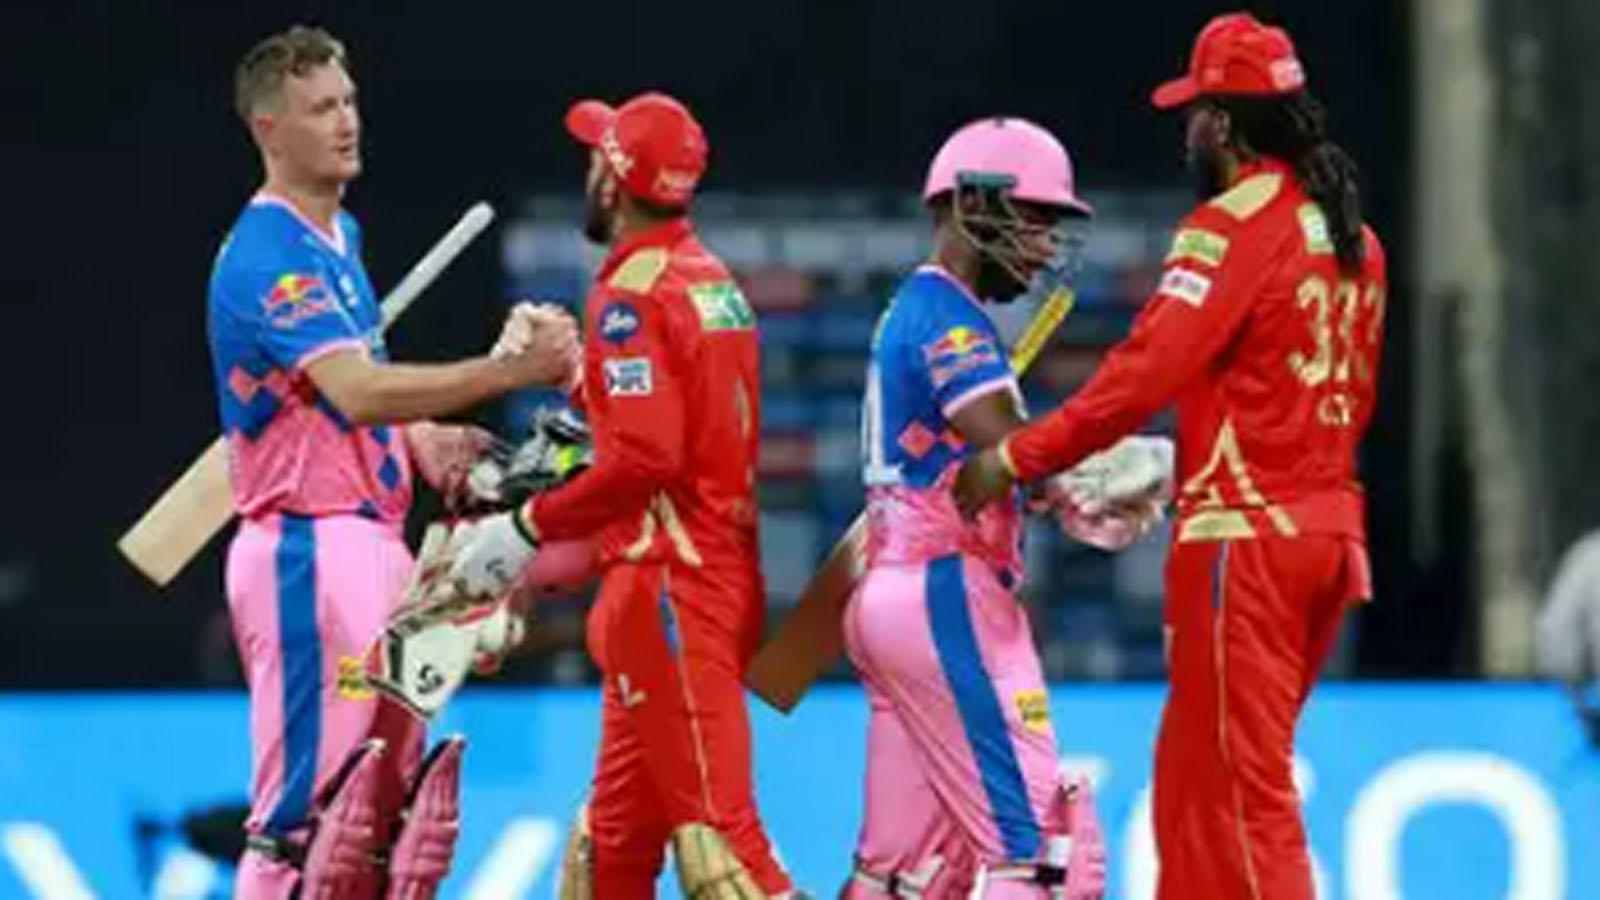 ipl-2021-punjab-kings-beat-rajasthan-royals-by-4-runs-in-high-scoring-thriller